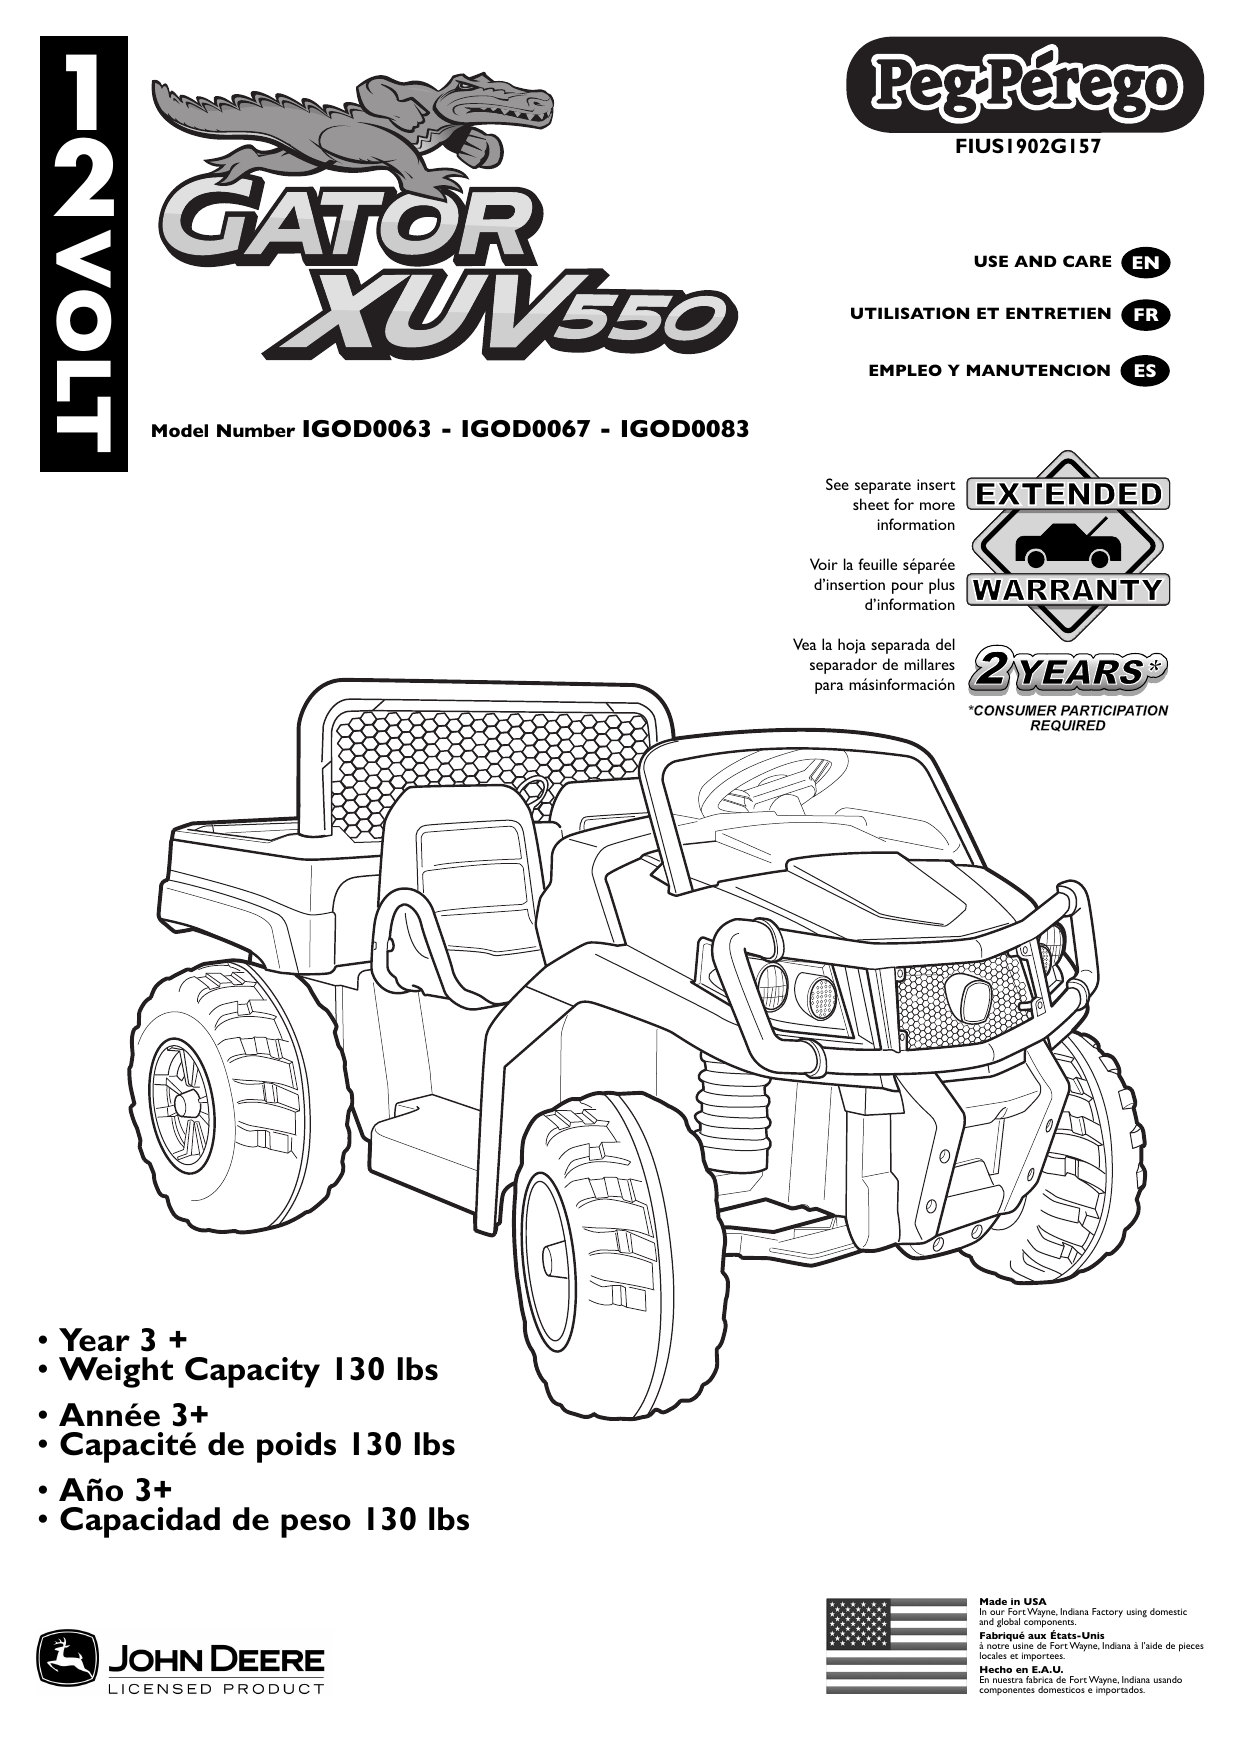 Peg Perego John Deere Gator XUV550 Use and Care Manual